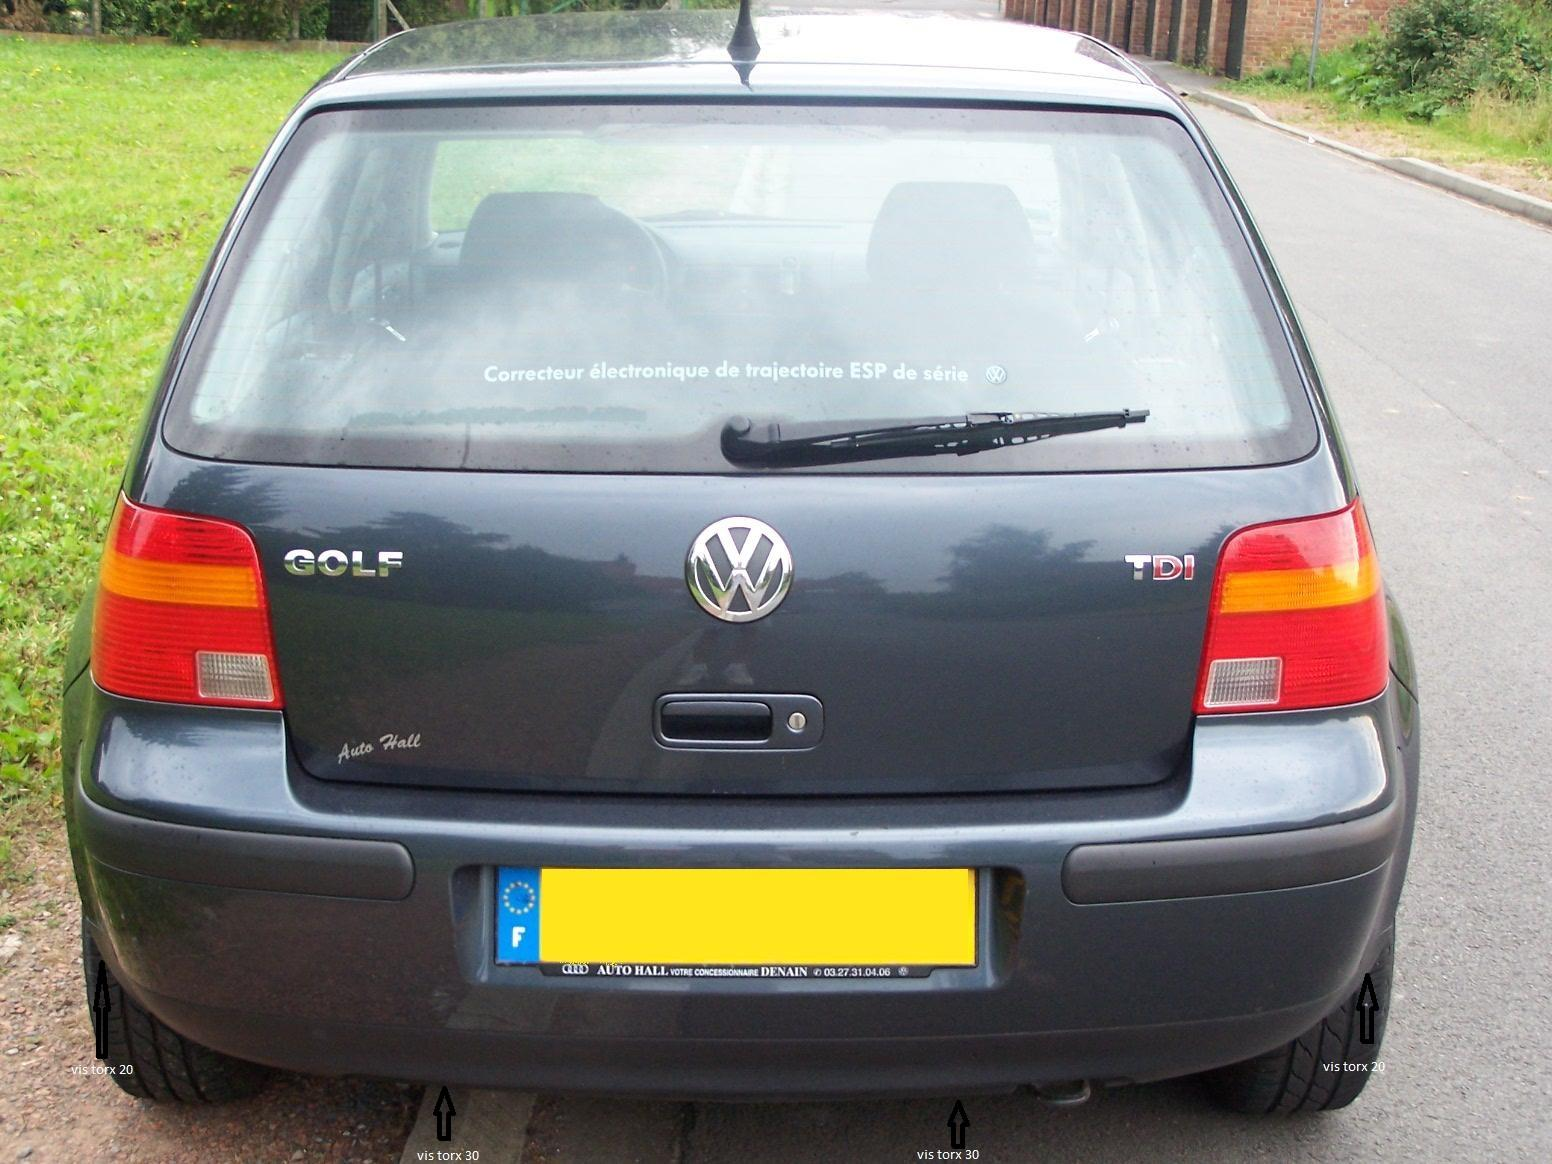 golf 4 tdi gti 115ch a son achat garage des golf iv tdi 115 page 4 forum volkswagen golf iv. Black Bedroom Furniture Sets. Home Design Ideas